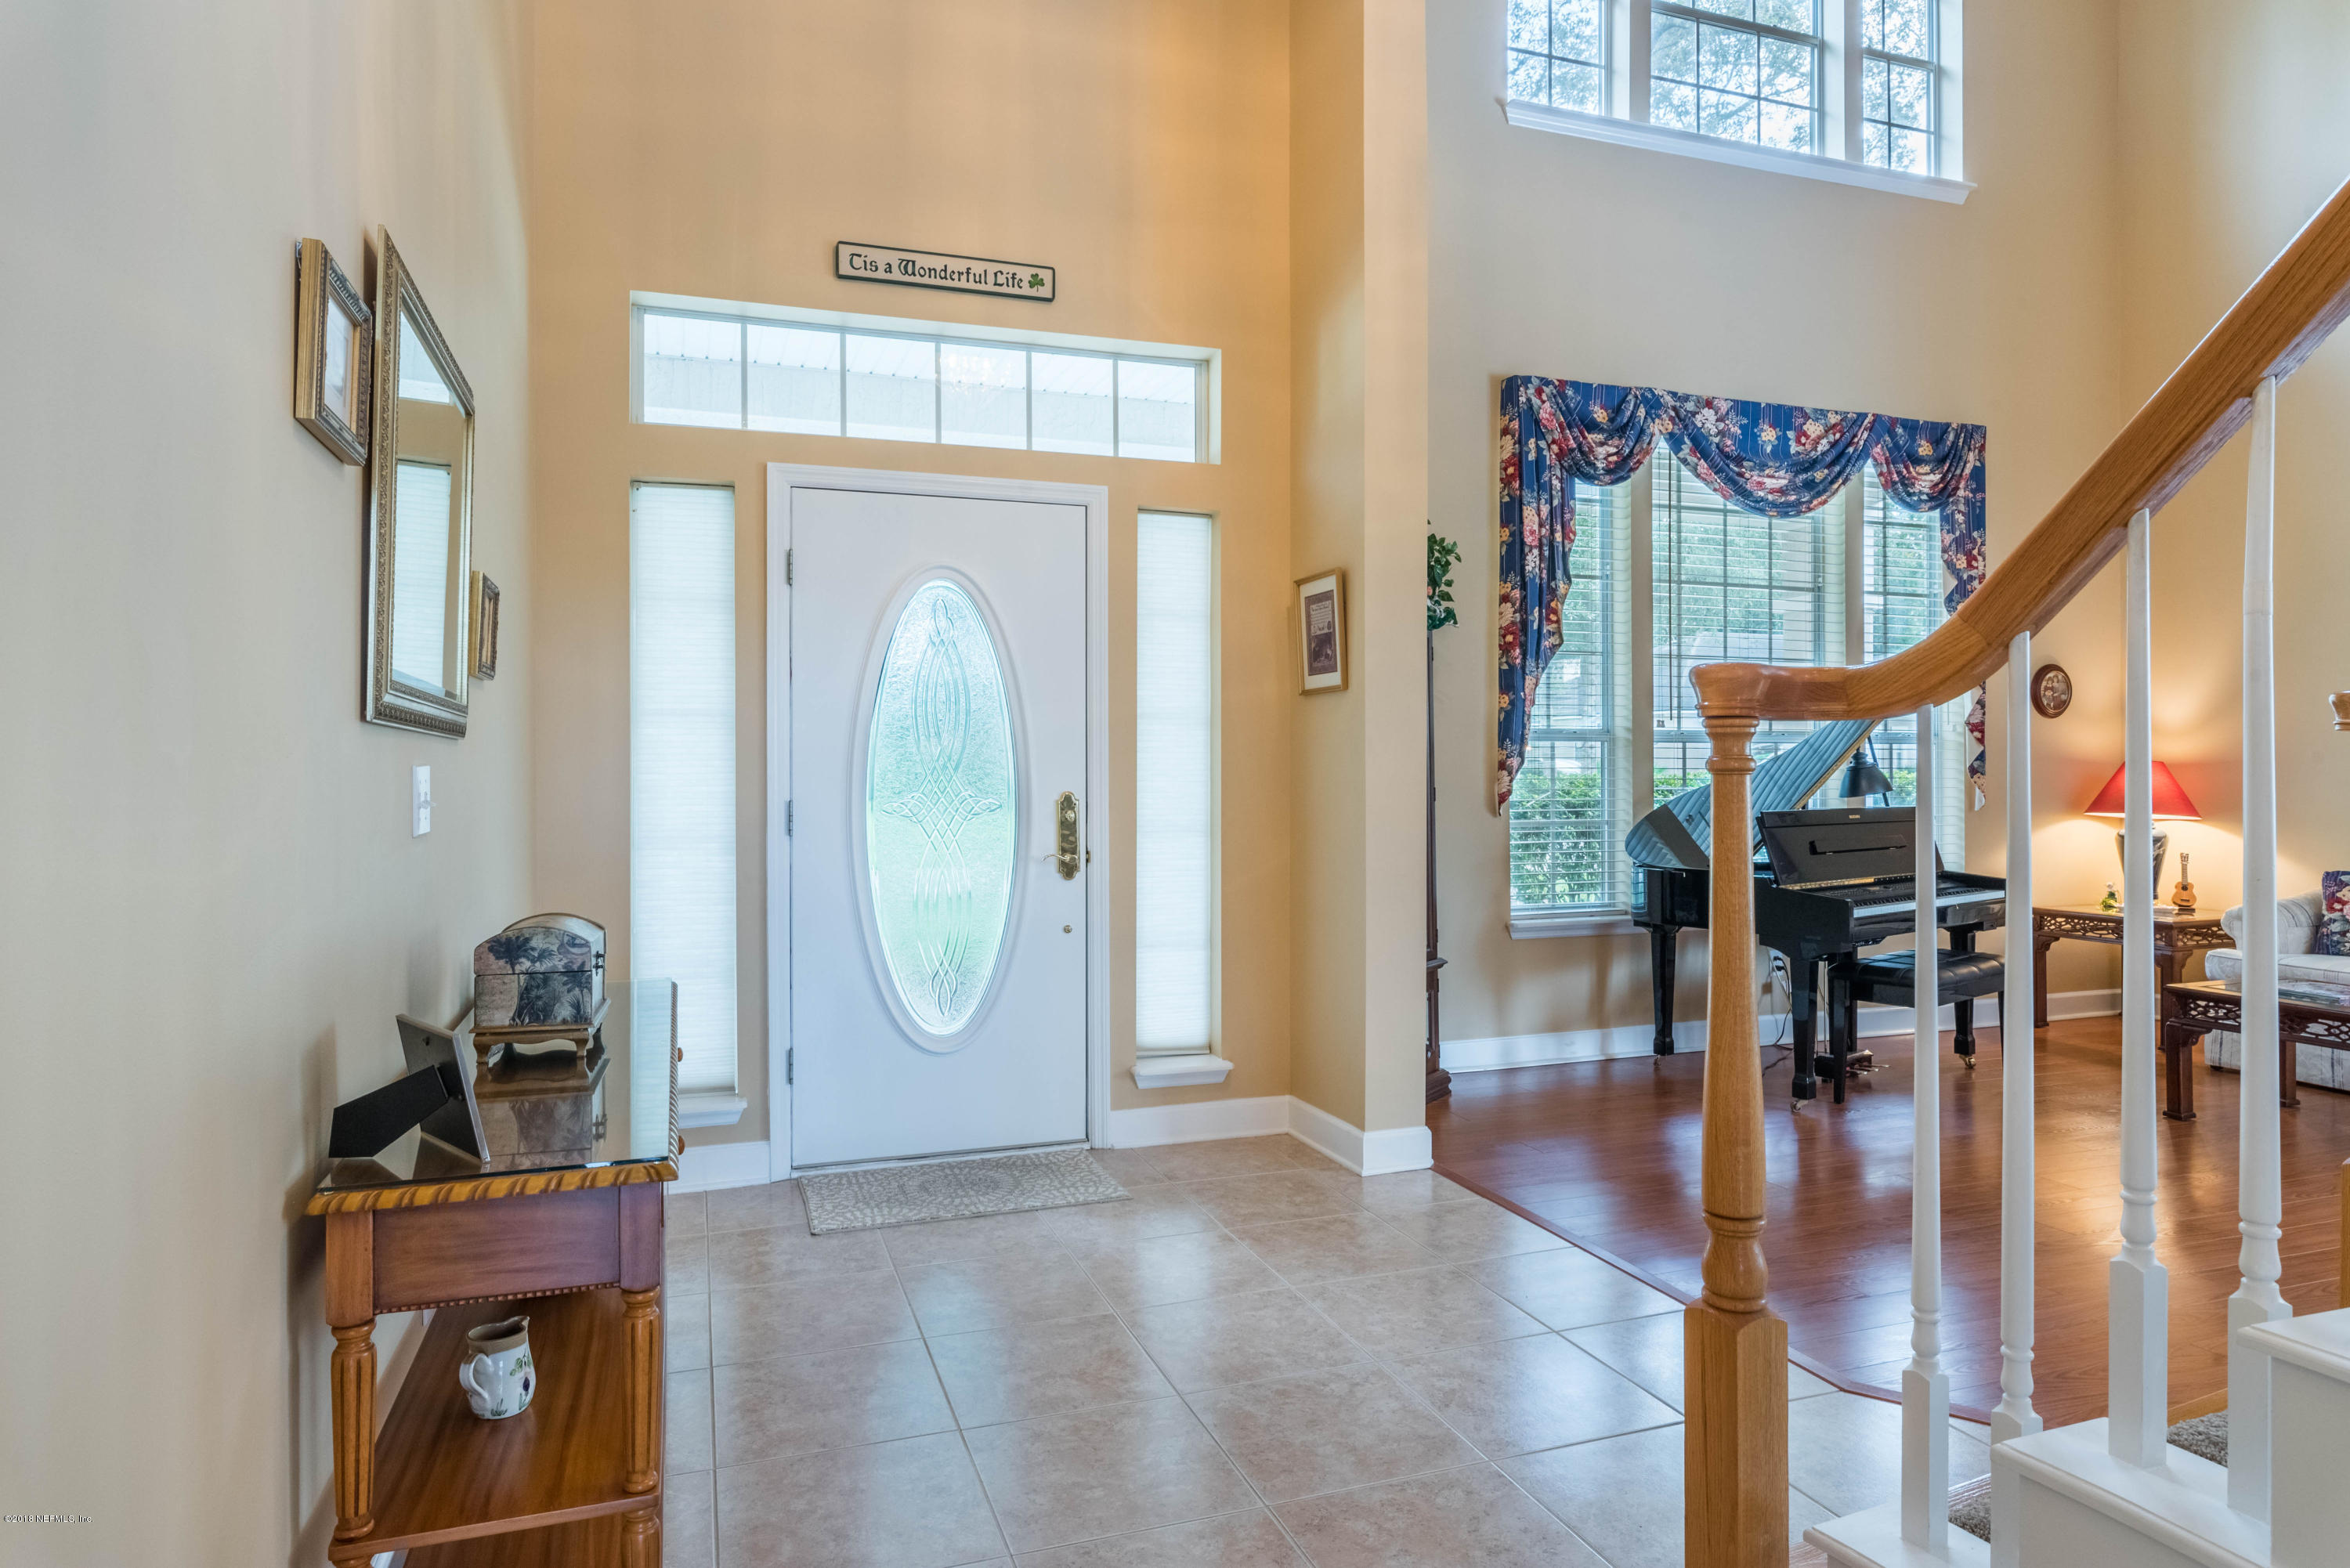 236 CHECKERBERRY, ST JOHNS, FLORIDA 32259, 5 Bedrooms Bedrooms, ,3 BathroomsBathrooms,Residential - single family,For sale,CHECKERBERRY,953789